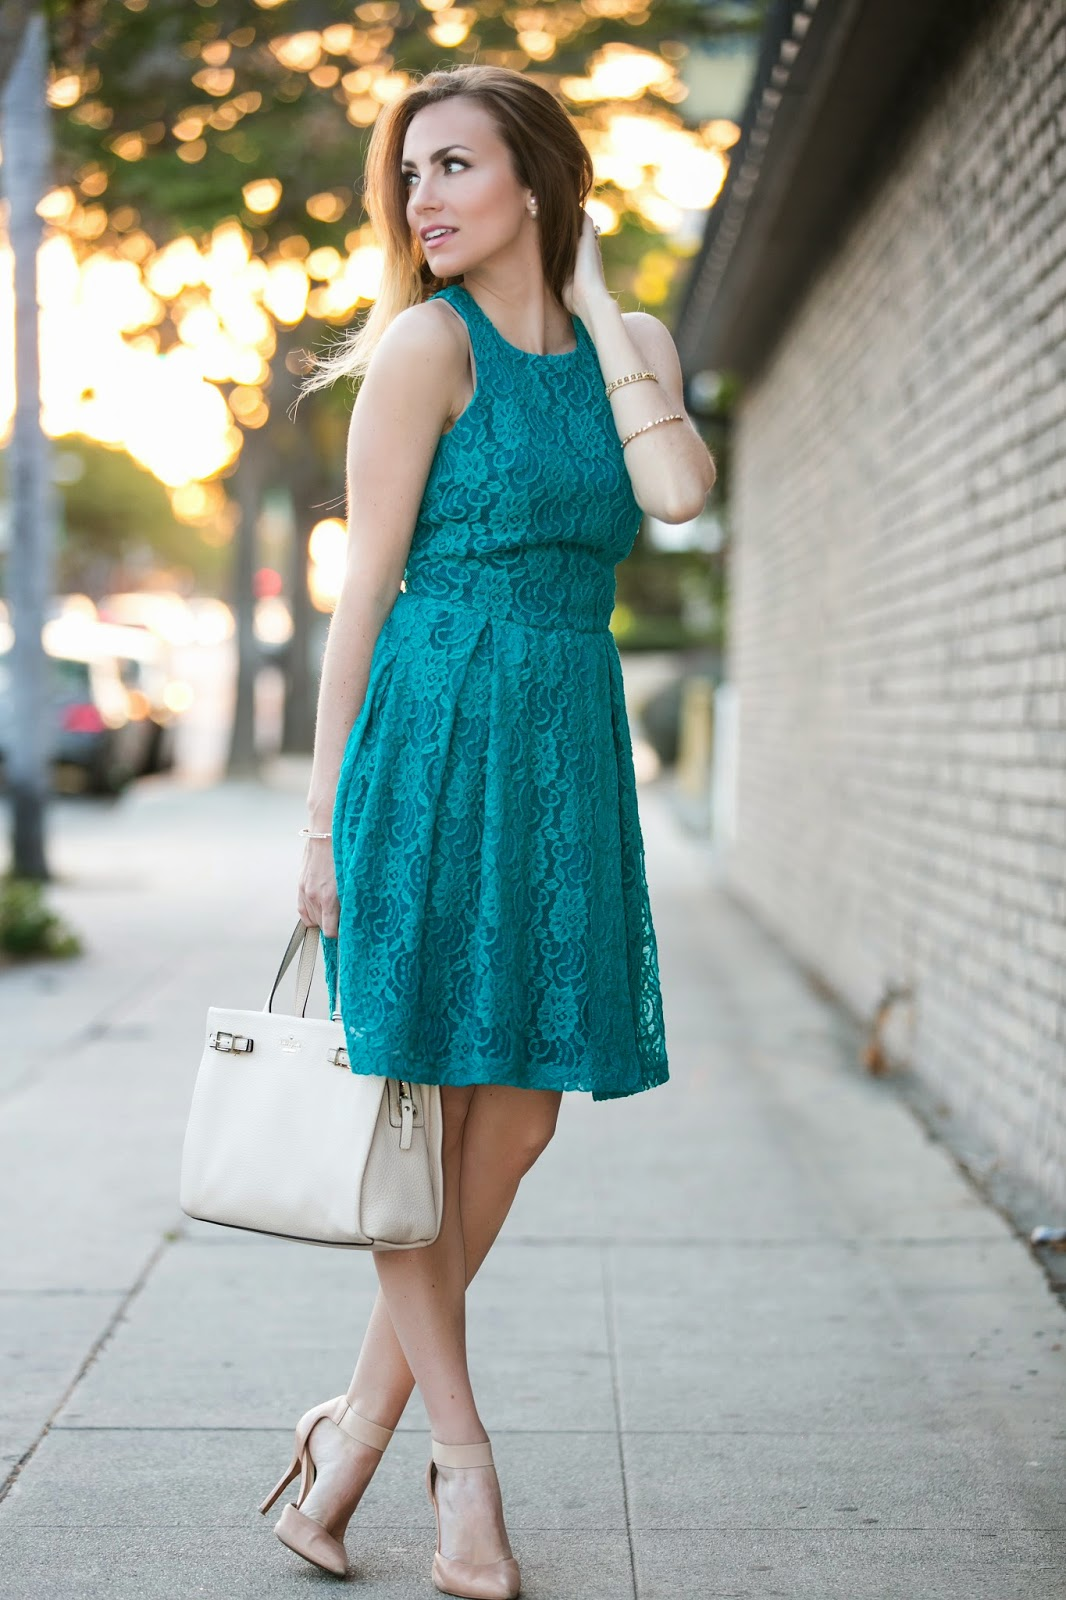 What Color Shoes Go With Teal Dress